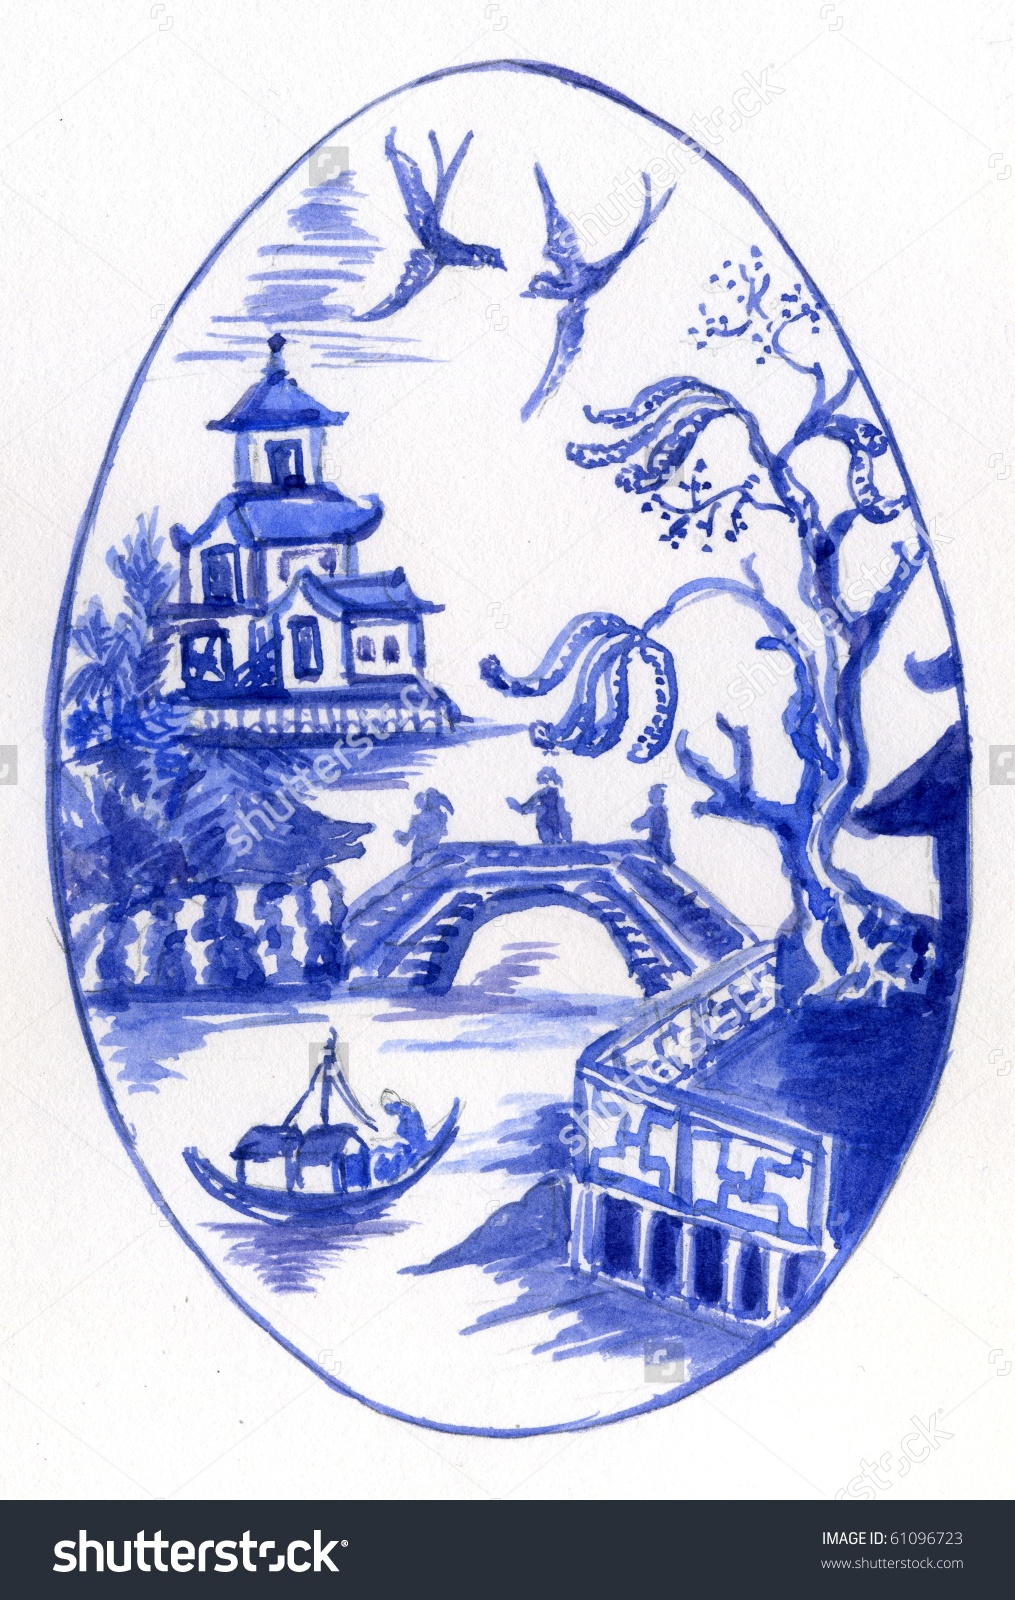 Iphone 4 Heart Wallpaper Download Blue Willow Pattern Wallpaper Gallery